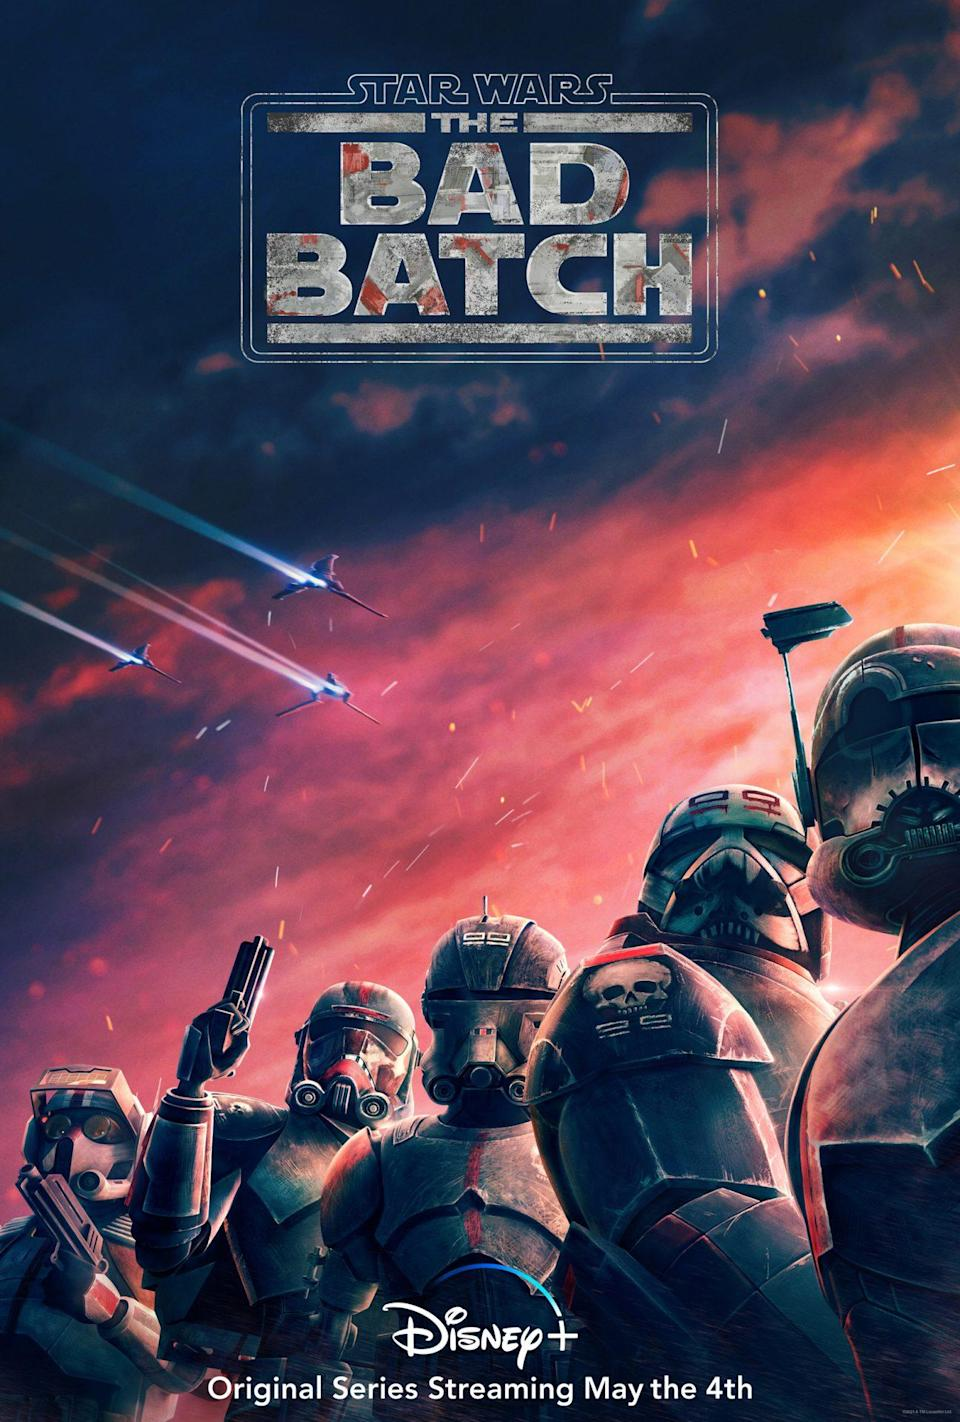 A poster for the Bad Batch shows five helmeted troopers in front of a beautiful sky